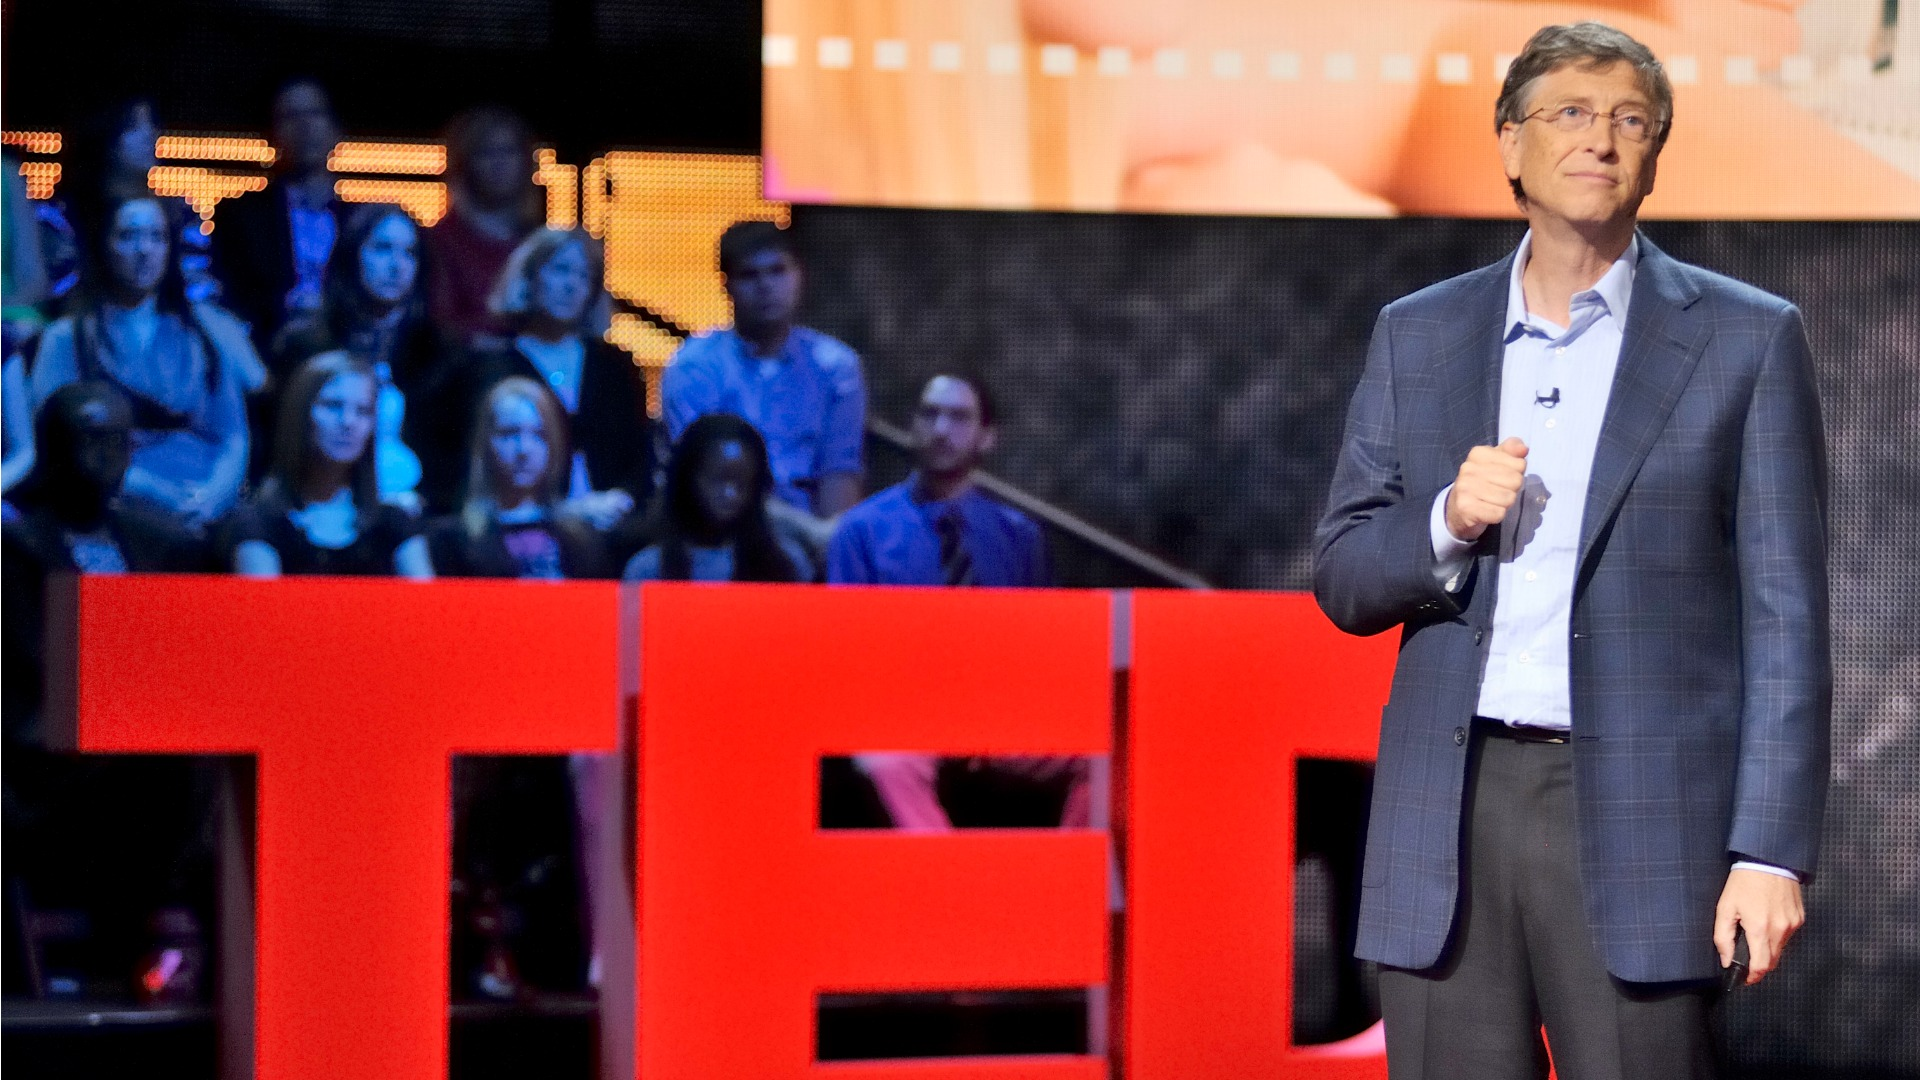 Bill Gates is an eminent speaker at TED talks and has given several talks which are extremely inspiring.